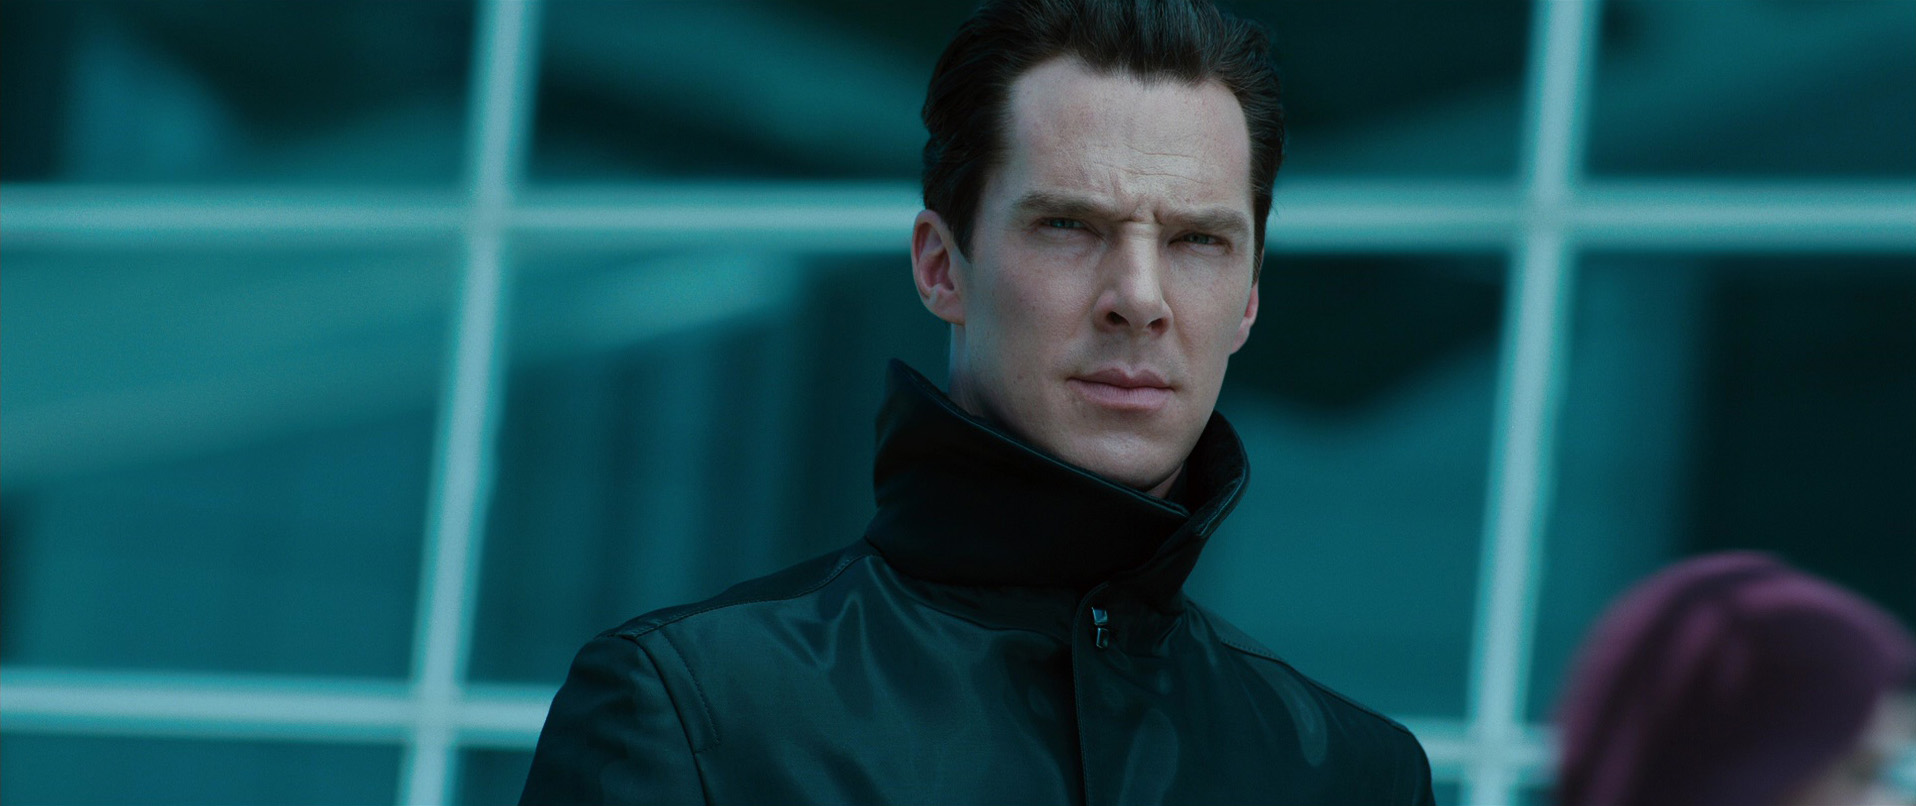 star-trek-into-darkness-hd-0367.jpg